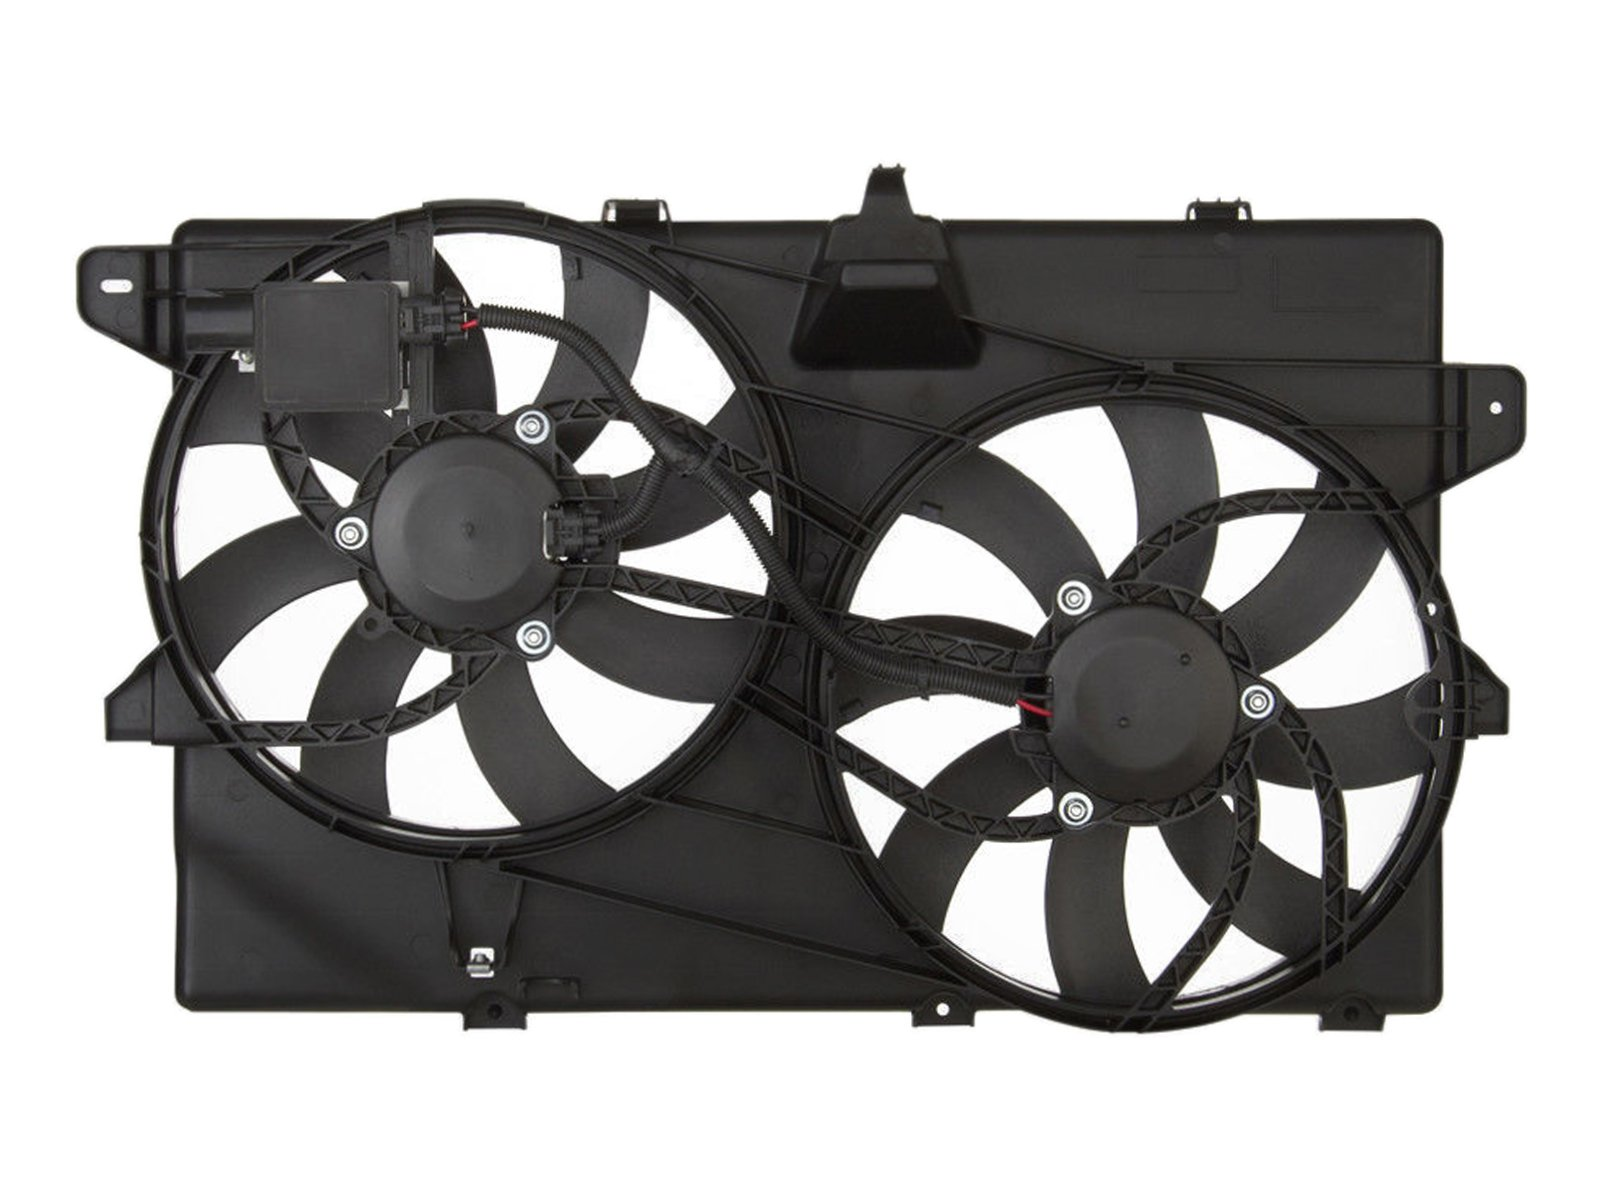 RADIATOR CONDENSER COOLING FAN FOR FORD LINCOLN FITS EDGE MKX V6 FO3115177 by Sunbelt Radiators